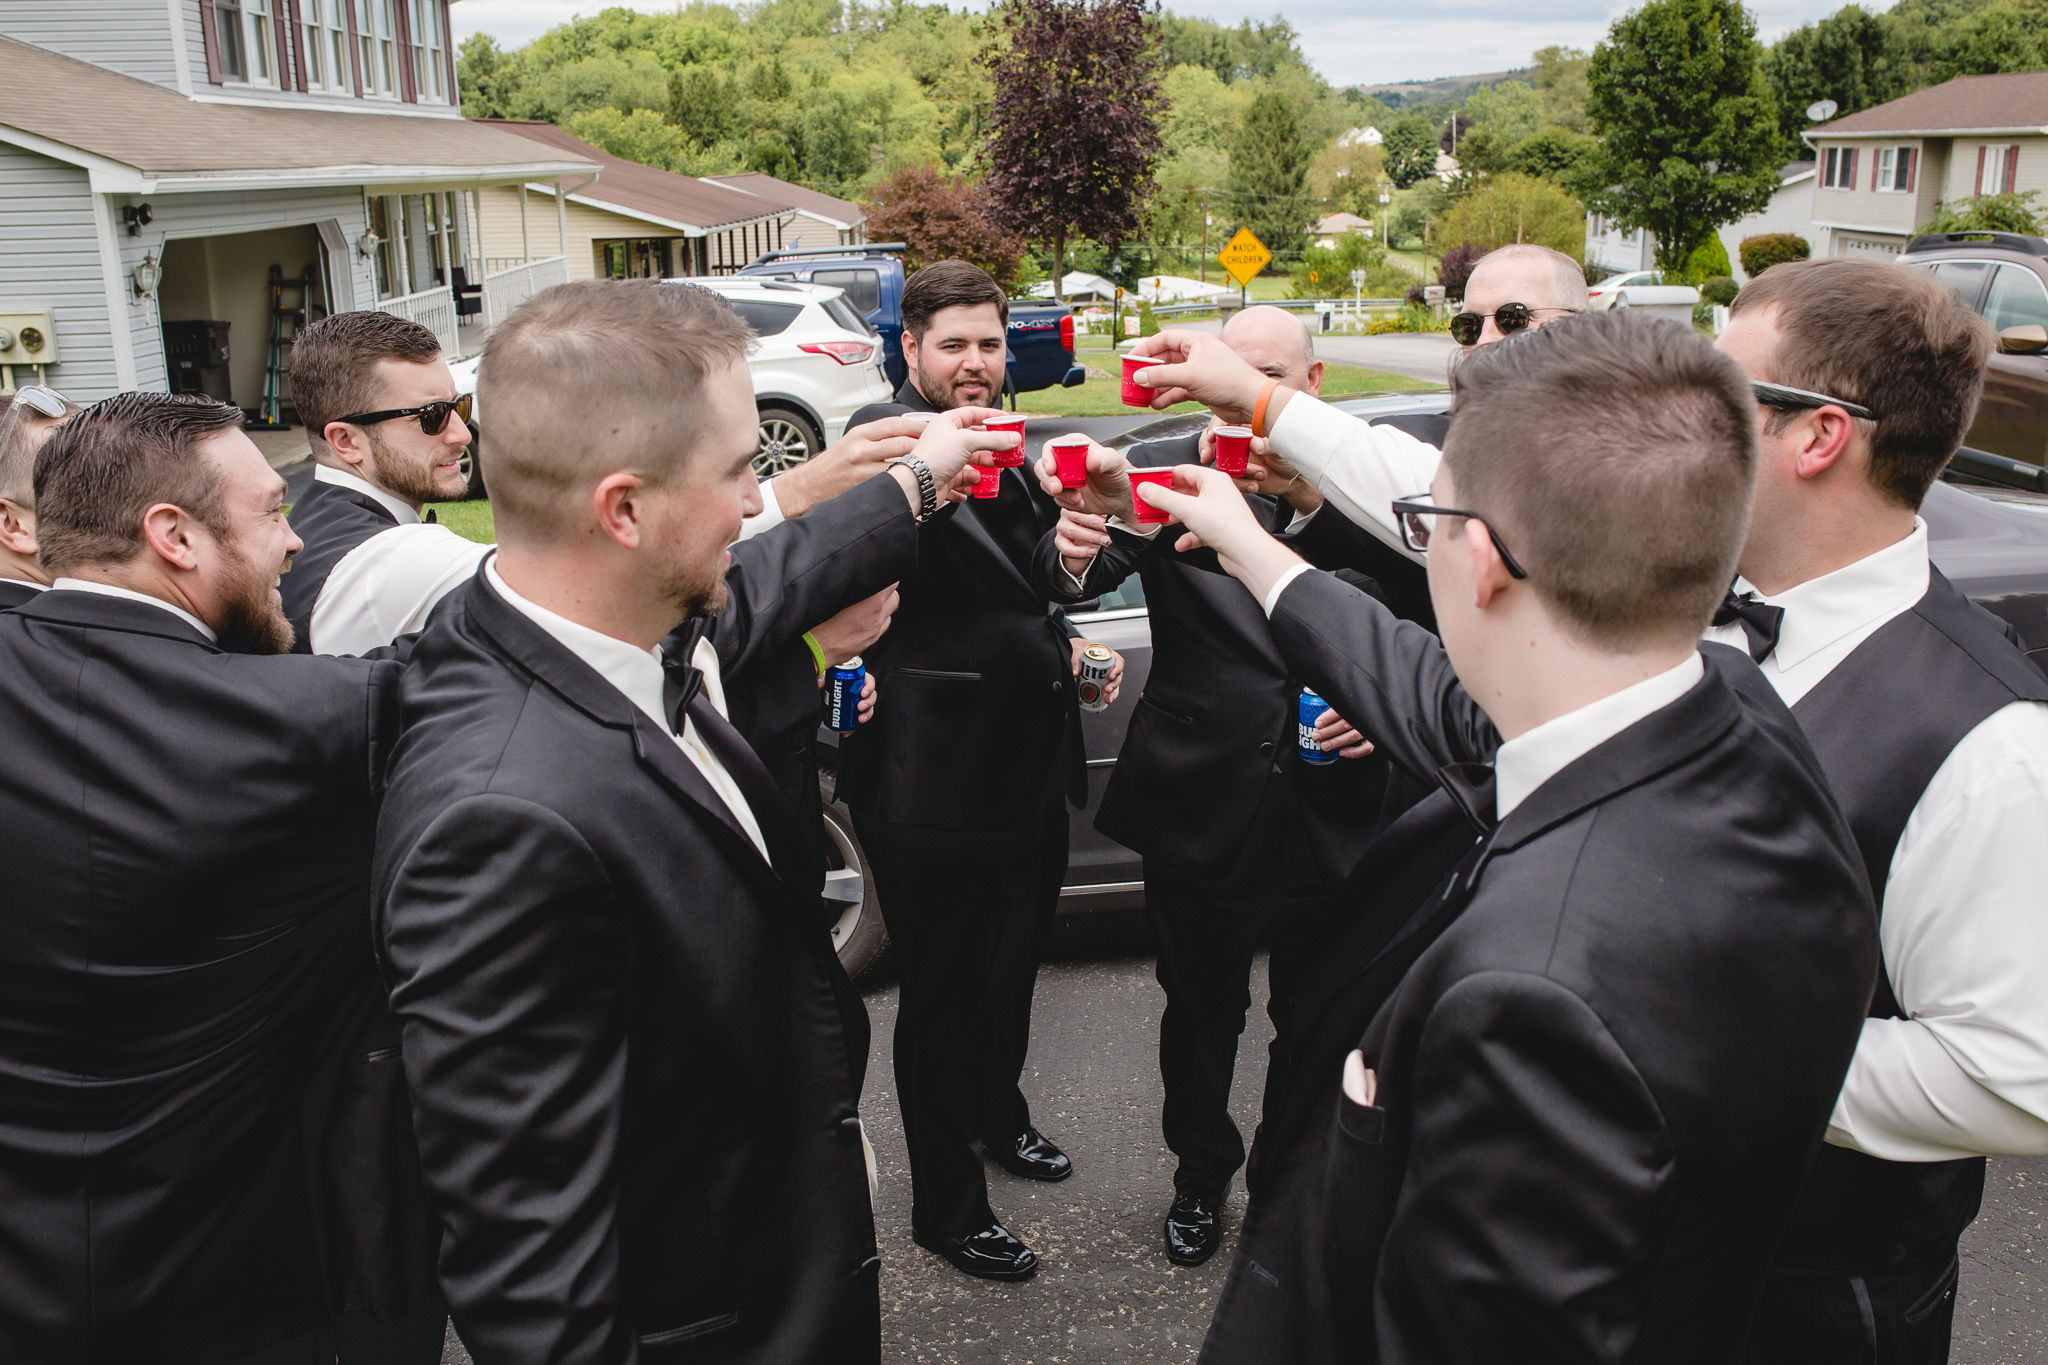 Groomsmen toast the groom before his wedding at the Gathering Place at Darlington Lake